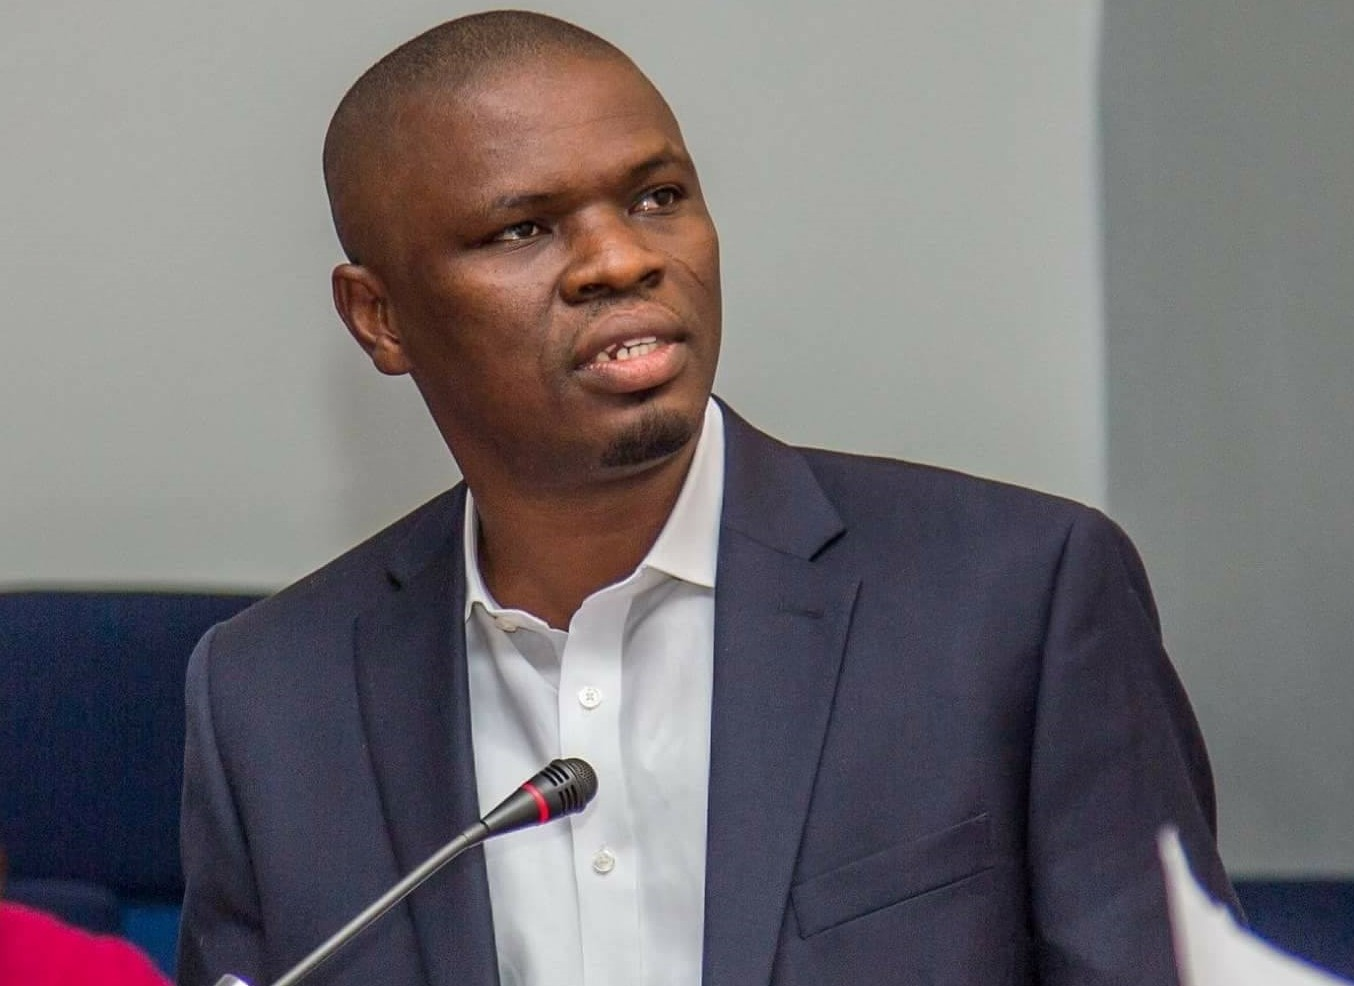 Black Stars 2022 AFCON and World Cup campaigns to cost $25m- Ghana's Sports Minister